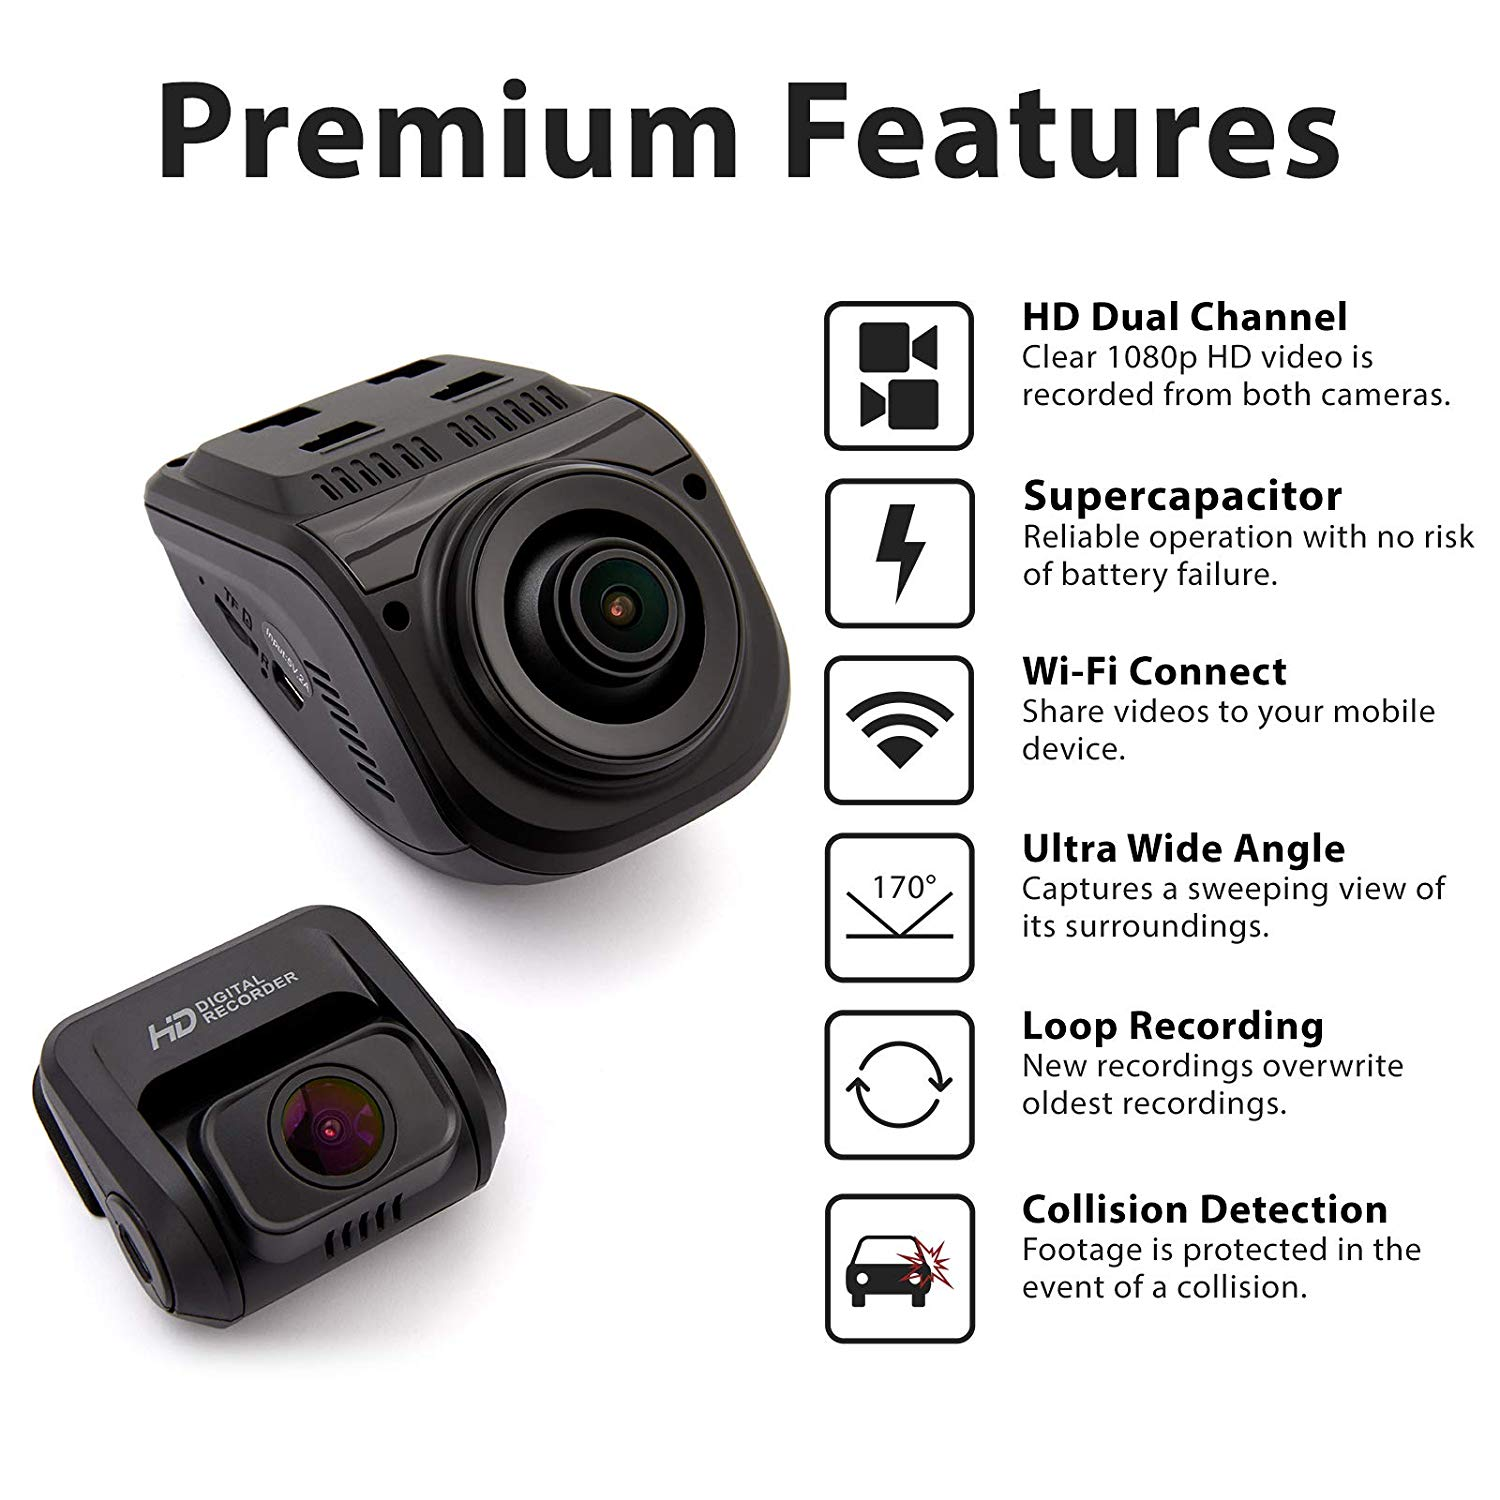 [US Direct] Original REXING V1P 3rd Generation Dual 1080p HD WiFi Dash Cam with Supercapacitor, 2.4